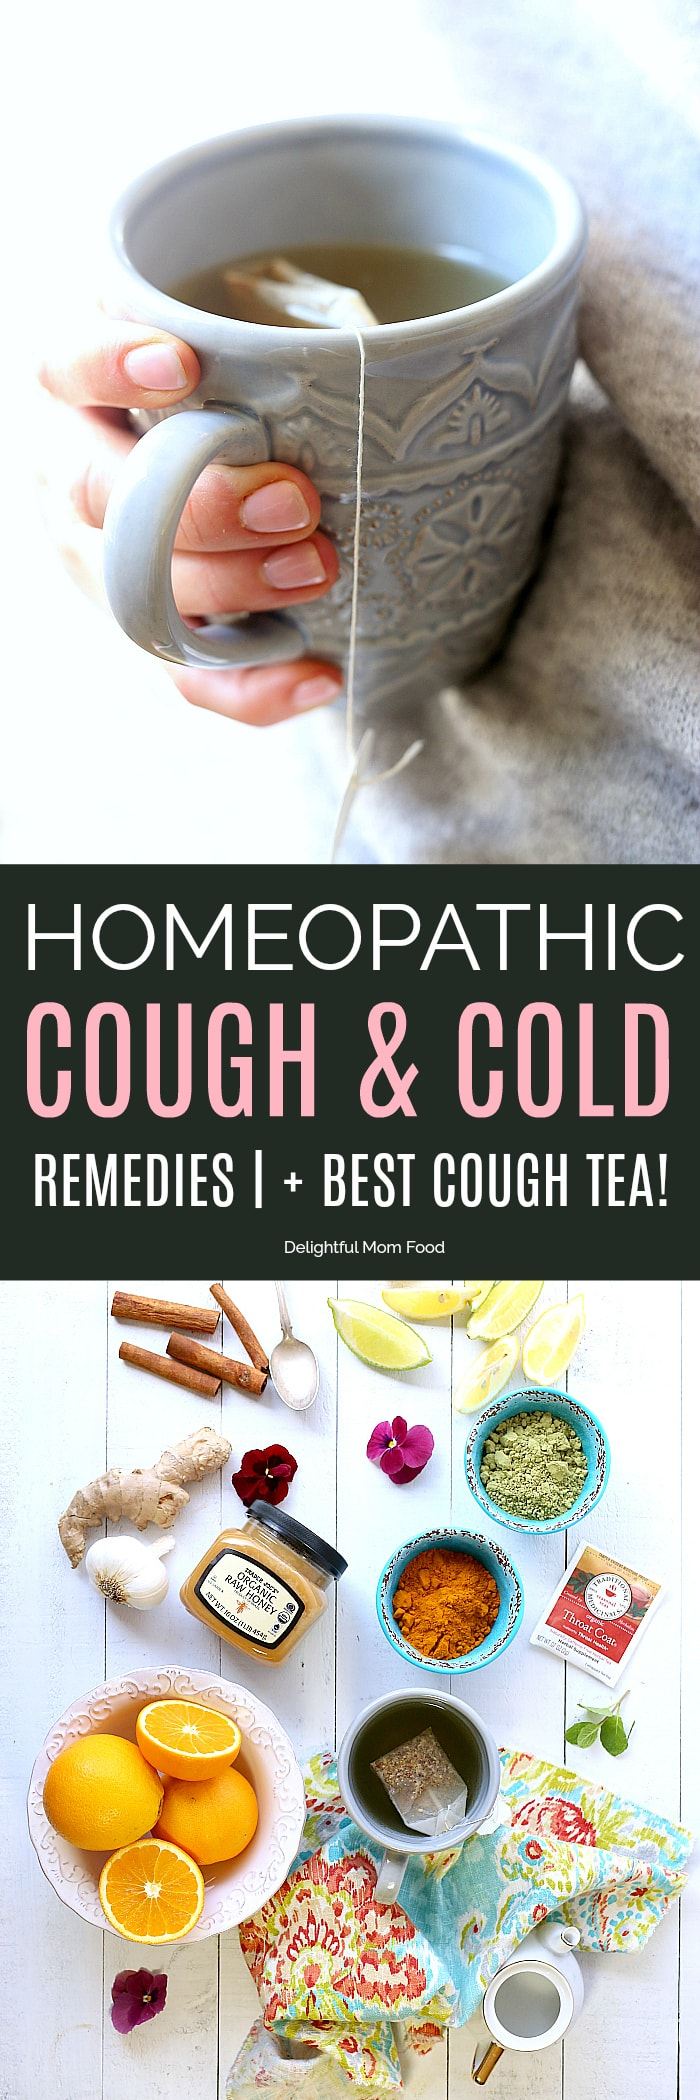 Natural remedies for cough, cold and flu symptoms to help heal your body quickly, boost immunity plus grandma's best tea recipe to fight a naughty cough that doesn't seem to go away! #homeopathic #remedies #healing #cough #cold #flu #home #natural #tea | Delightfulmomfood.com